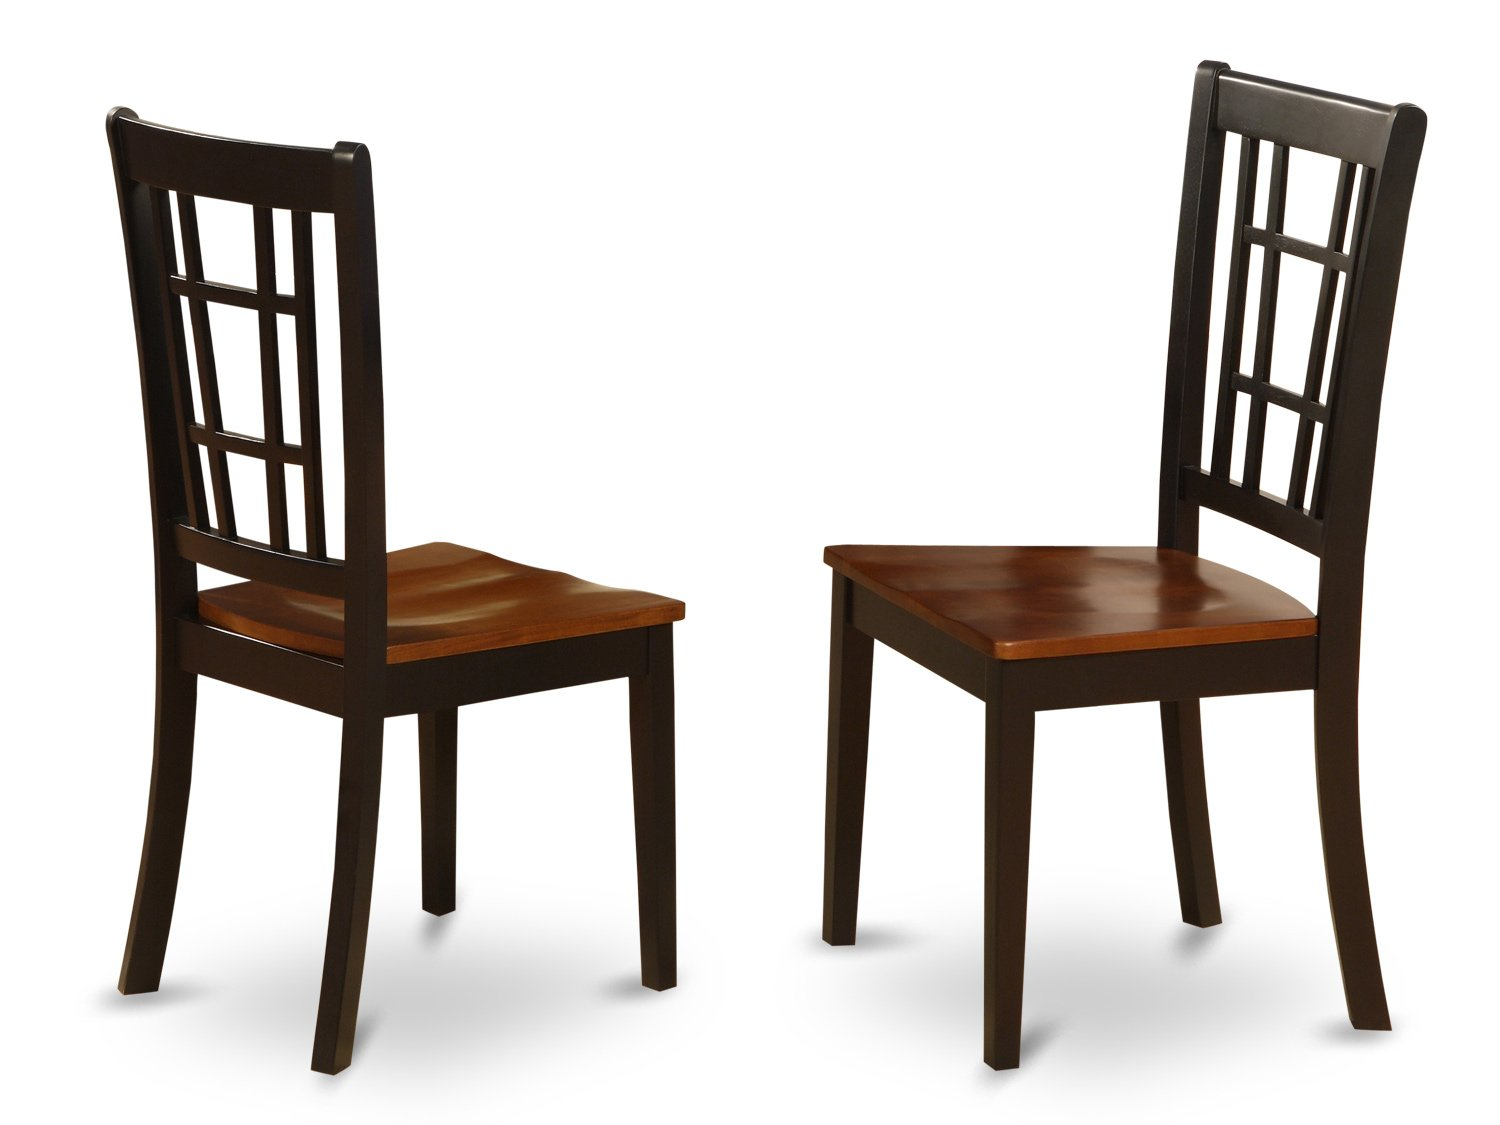 Set of 2 Nicoli  dining room chairs in Saddle Brown & Black finish.